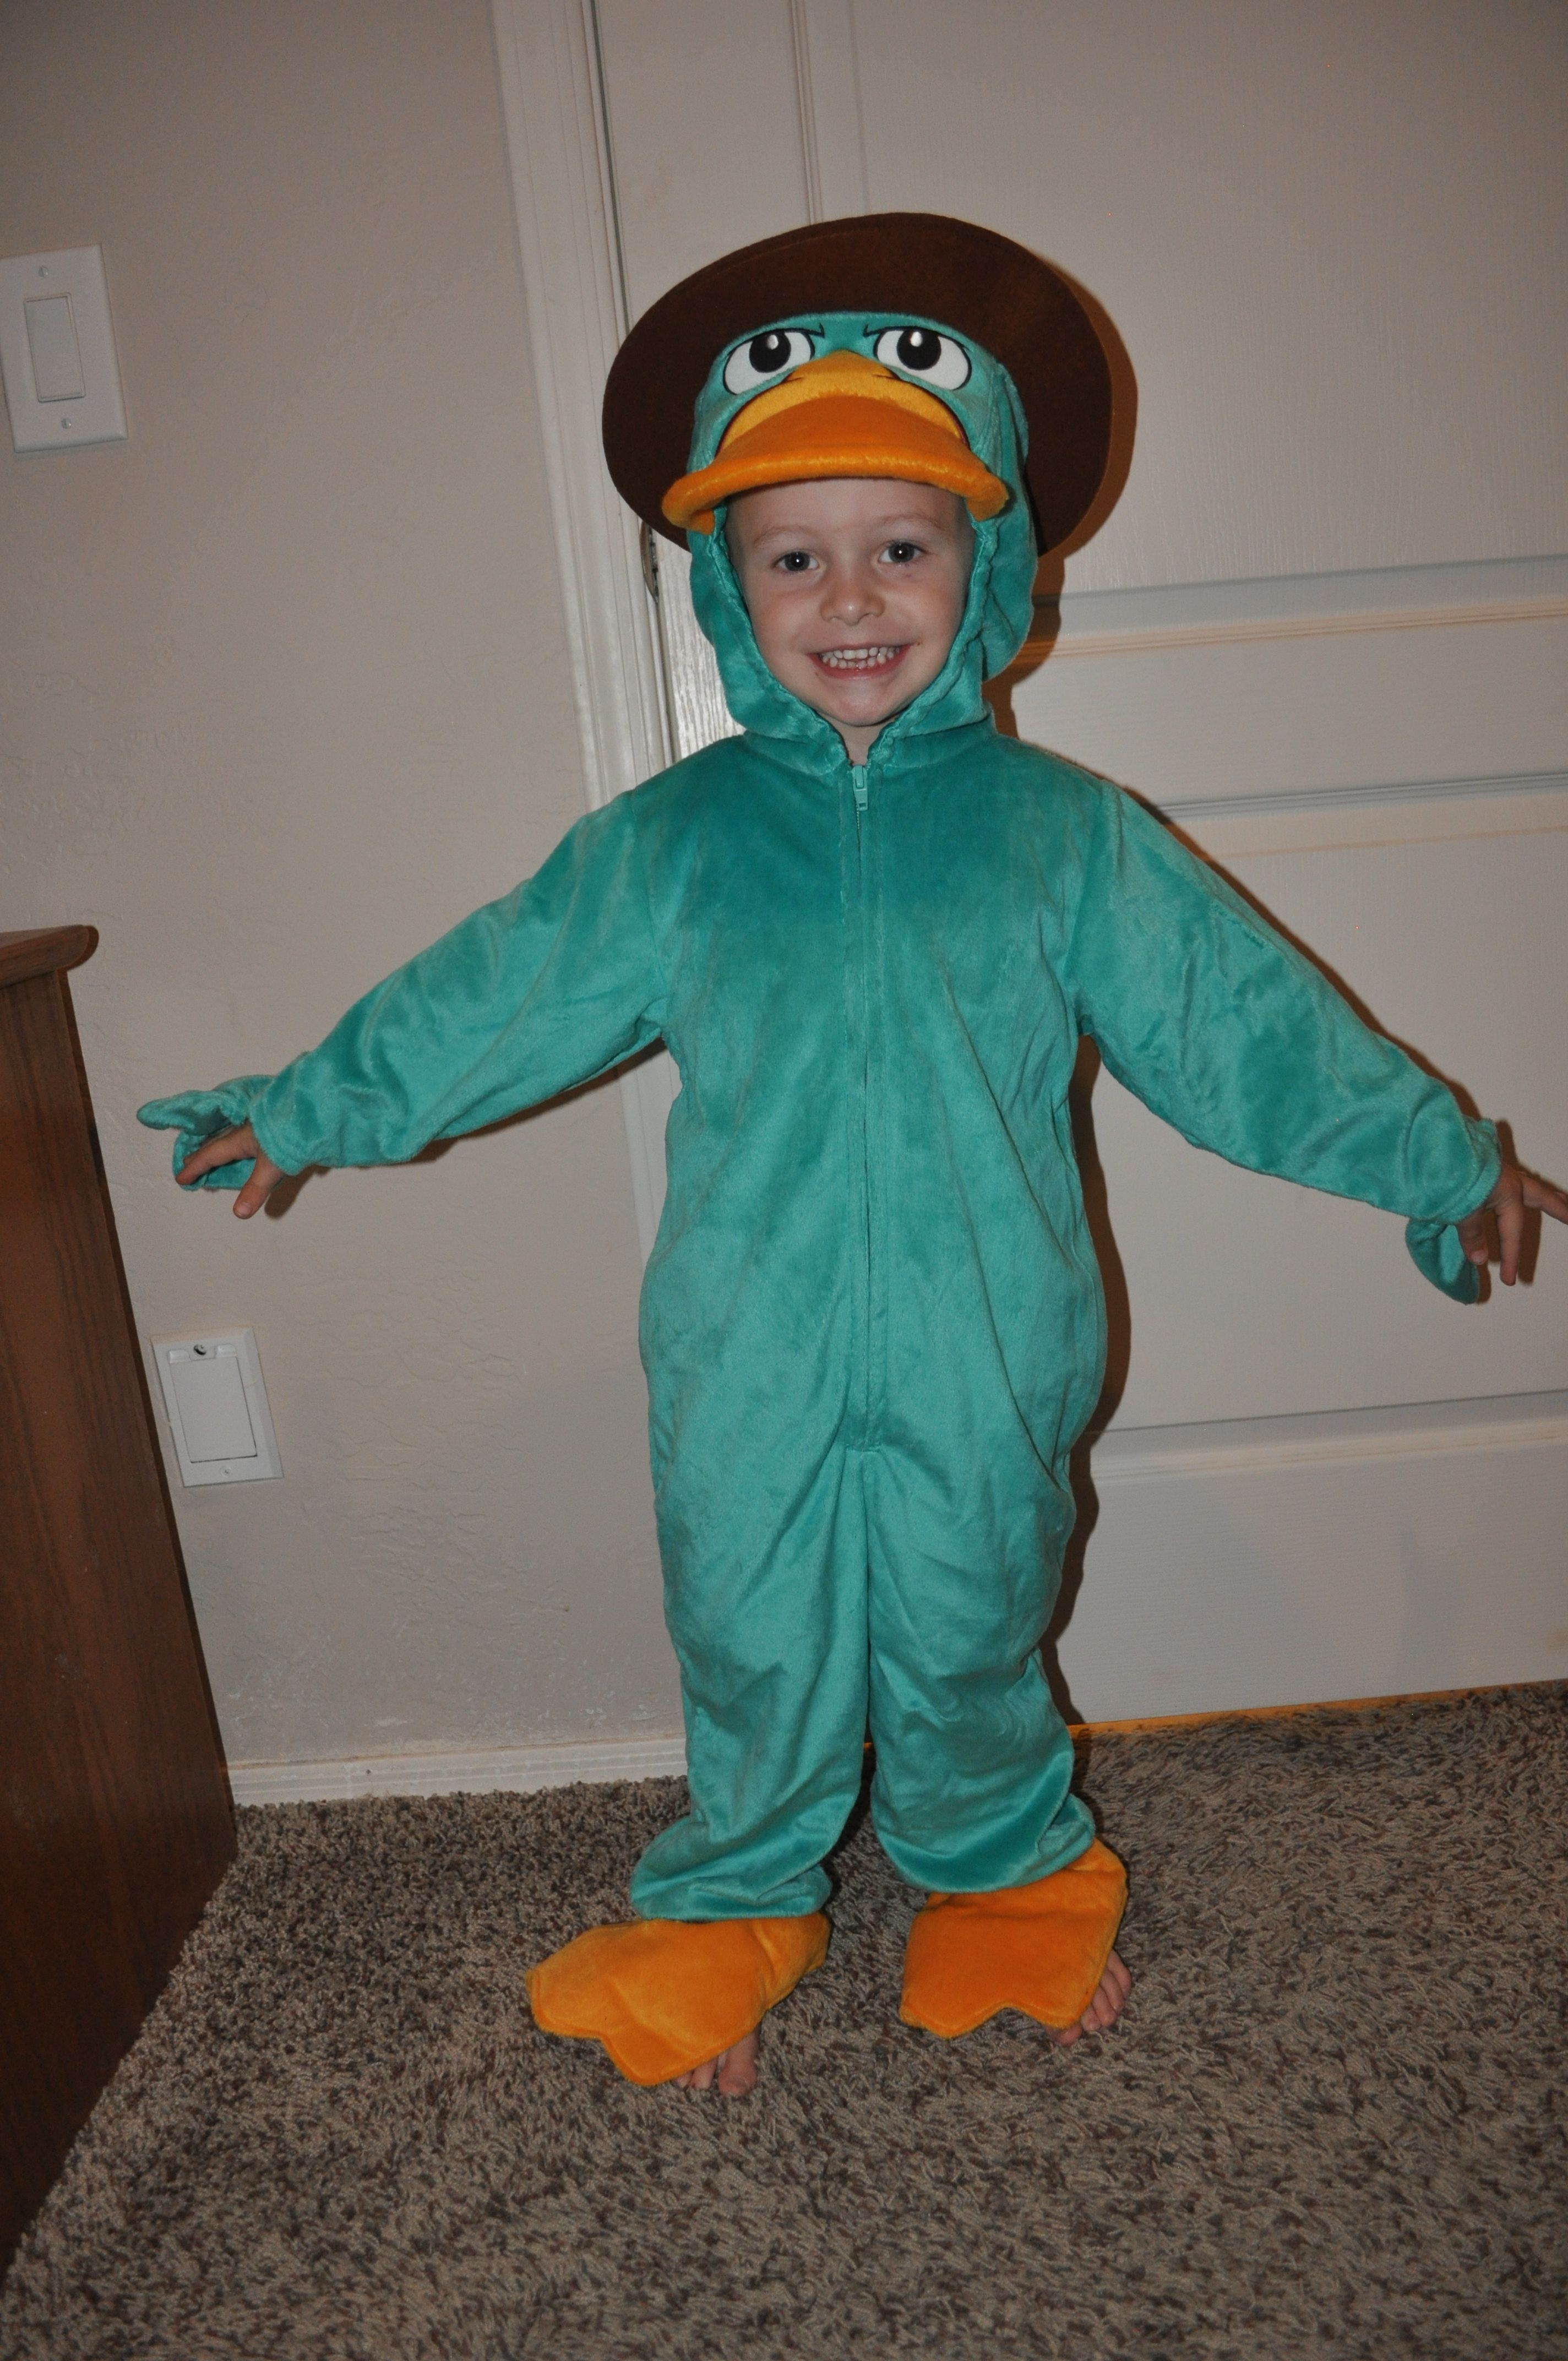 disney phineas and ferb perry the platypus halloween costume wwwmydisneylovecom - Phineas Halloween Costume